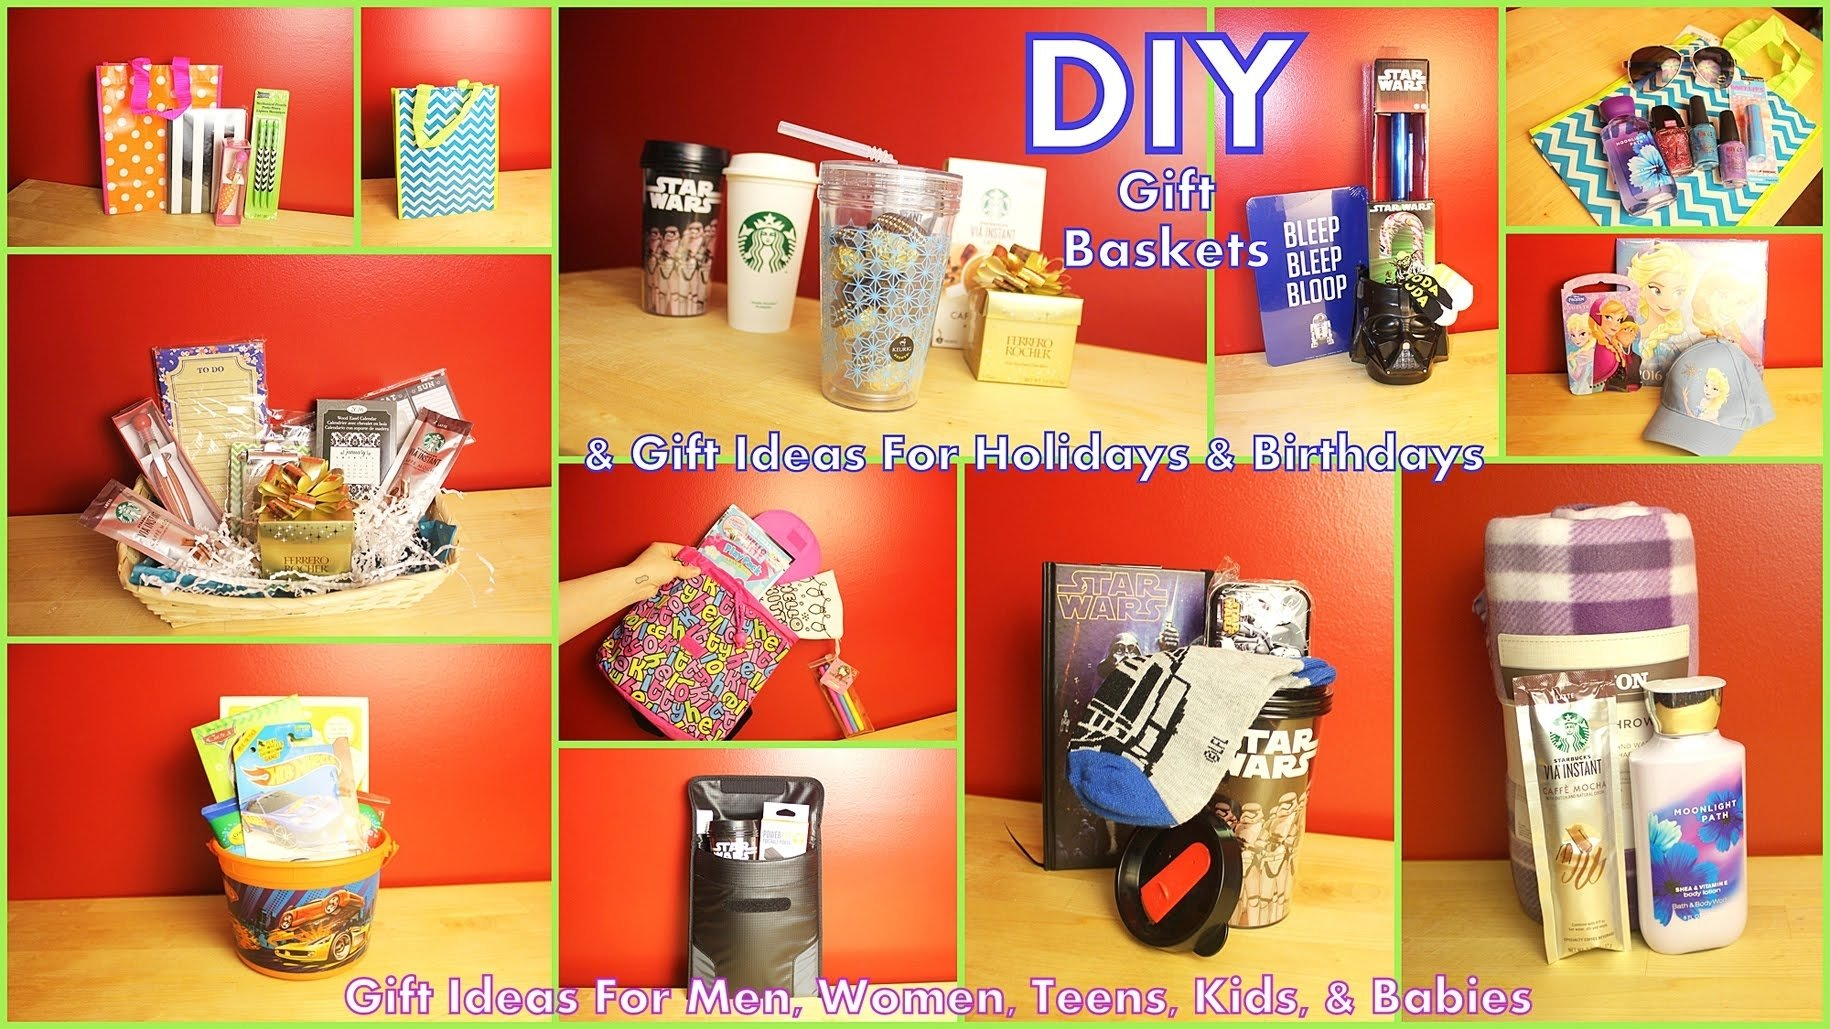 10 Lovely Birthday Ideas For Husband On A Budget Diy Gift Baskets How To